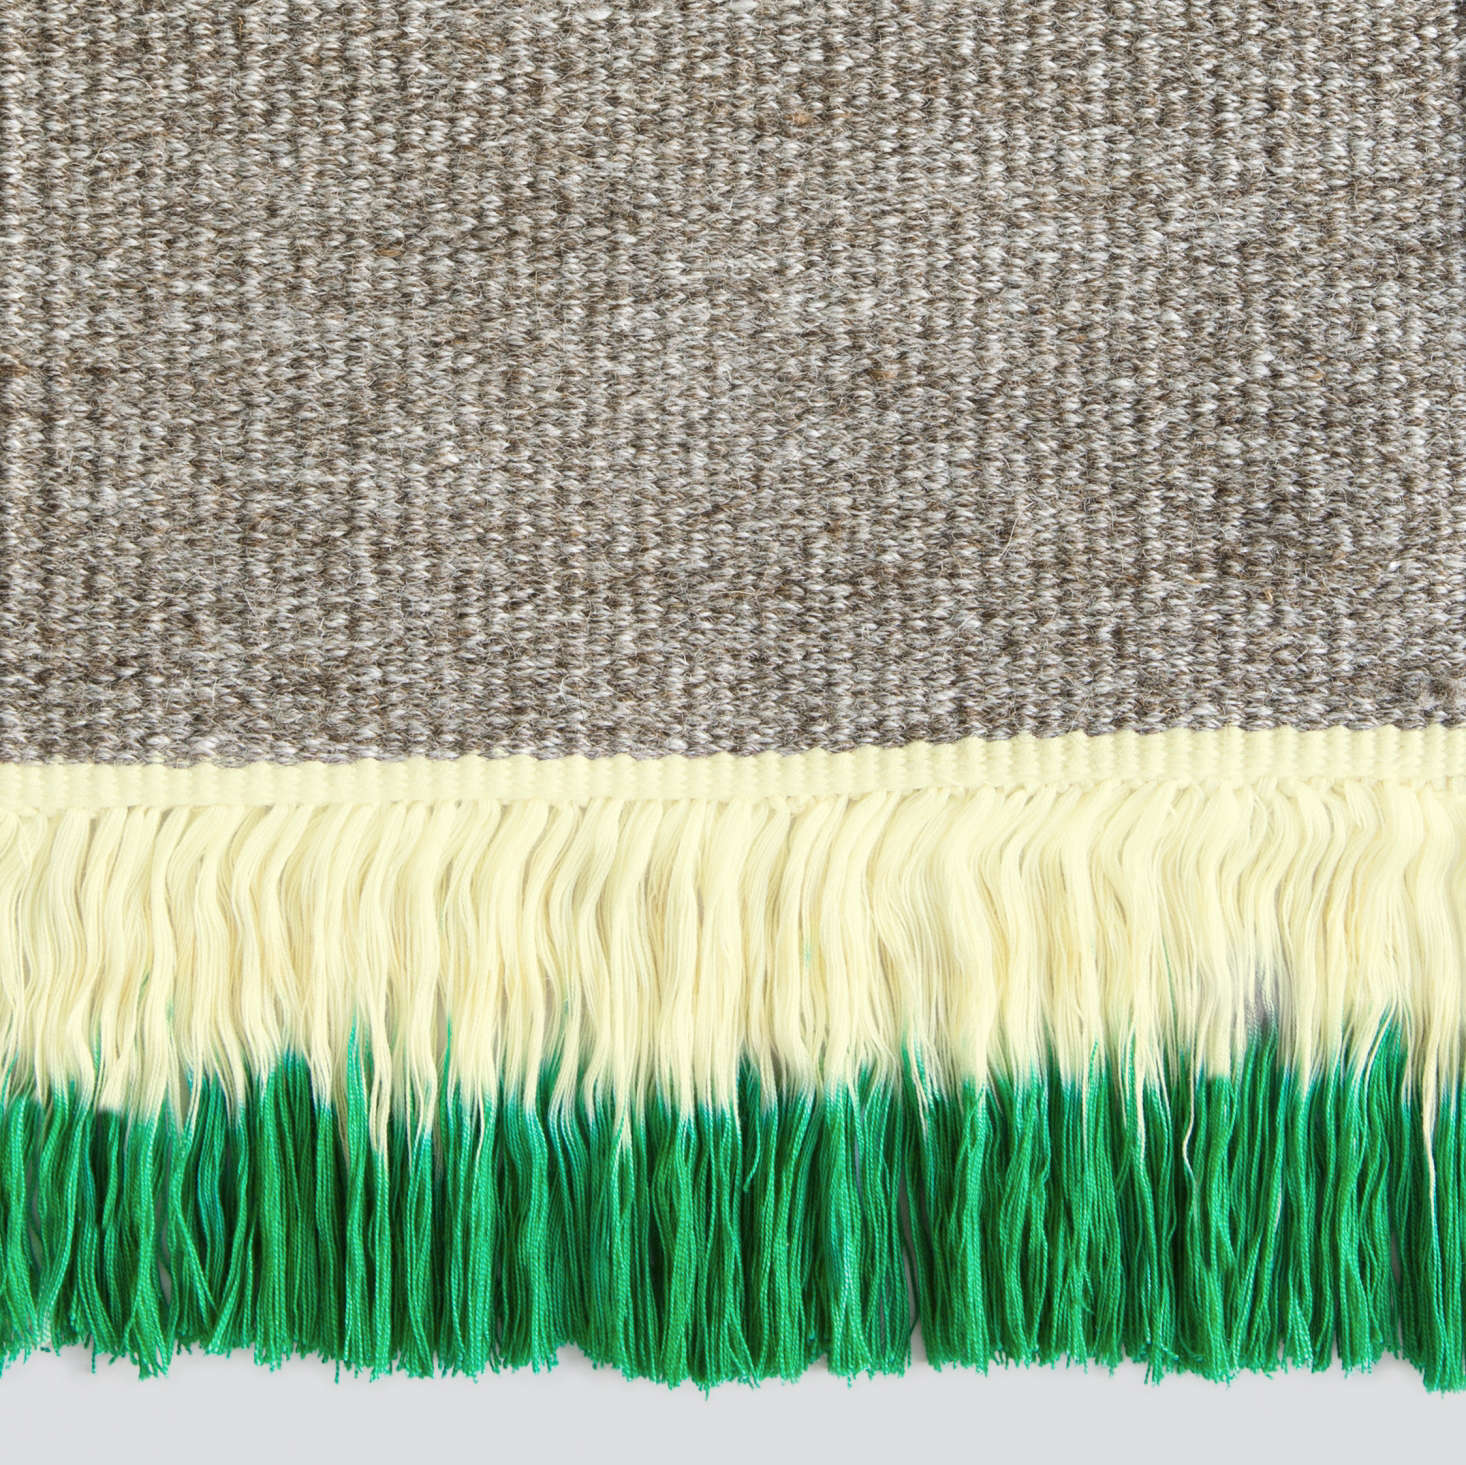 Dip-Dyed Fringe Rugs From Sweden